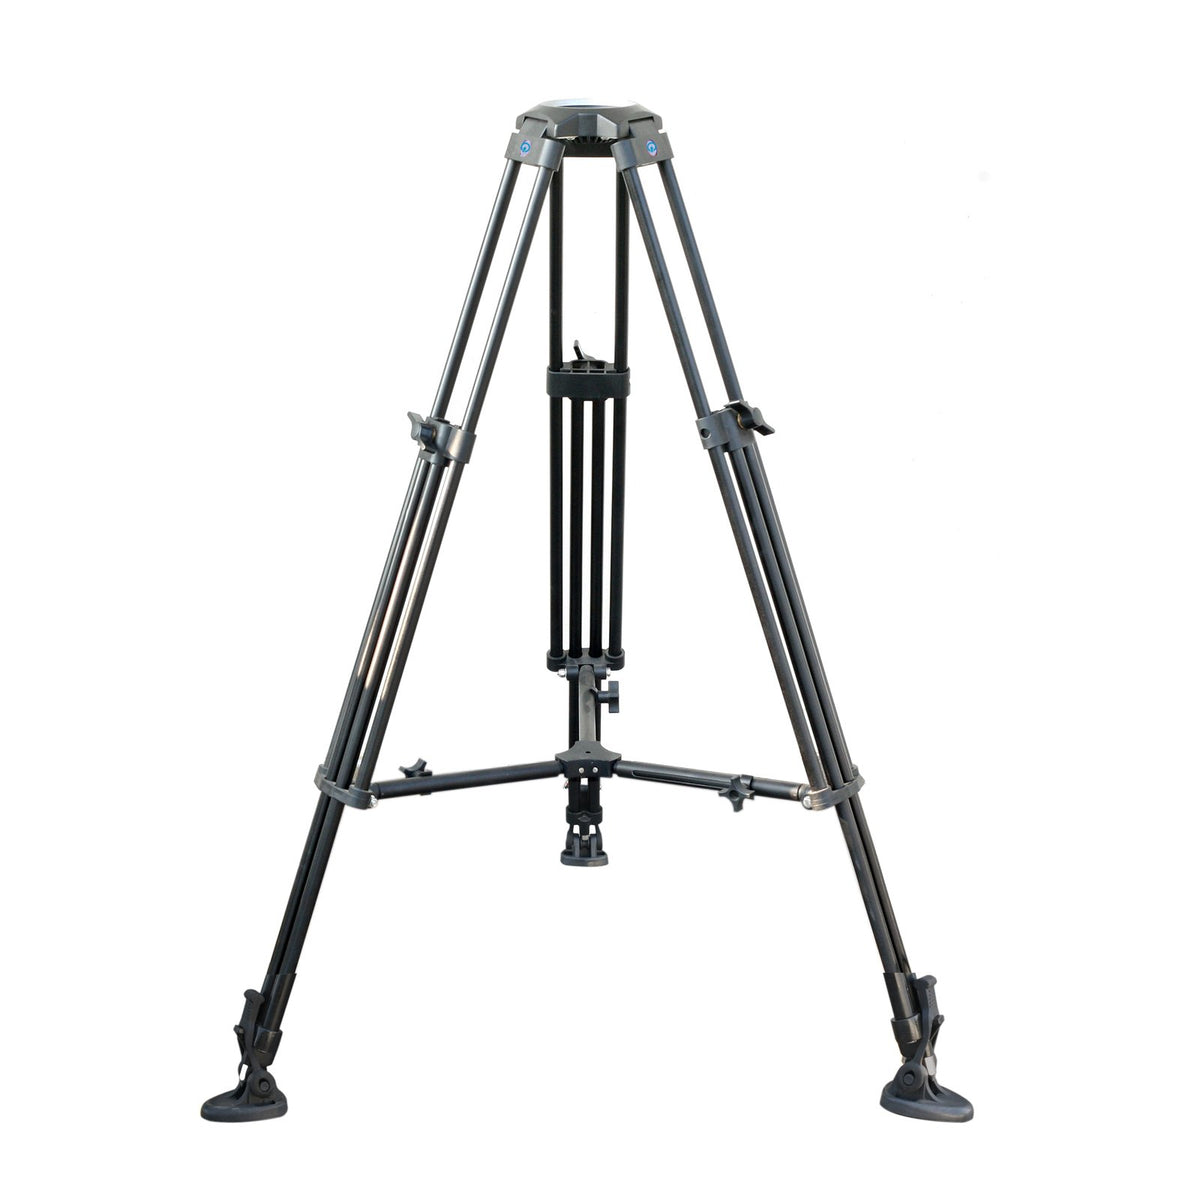 Proaim 100mm Bowl Head Tripod Stand With Rubber Tripod Shoes